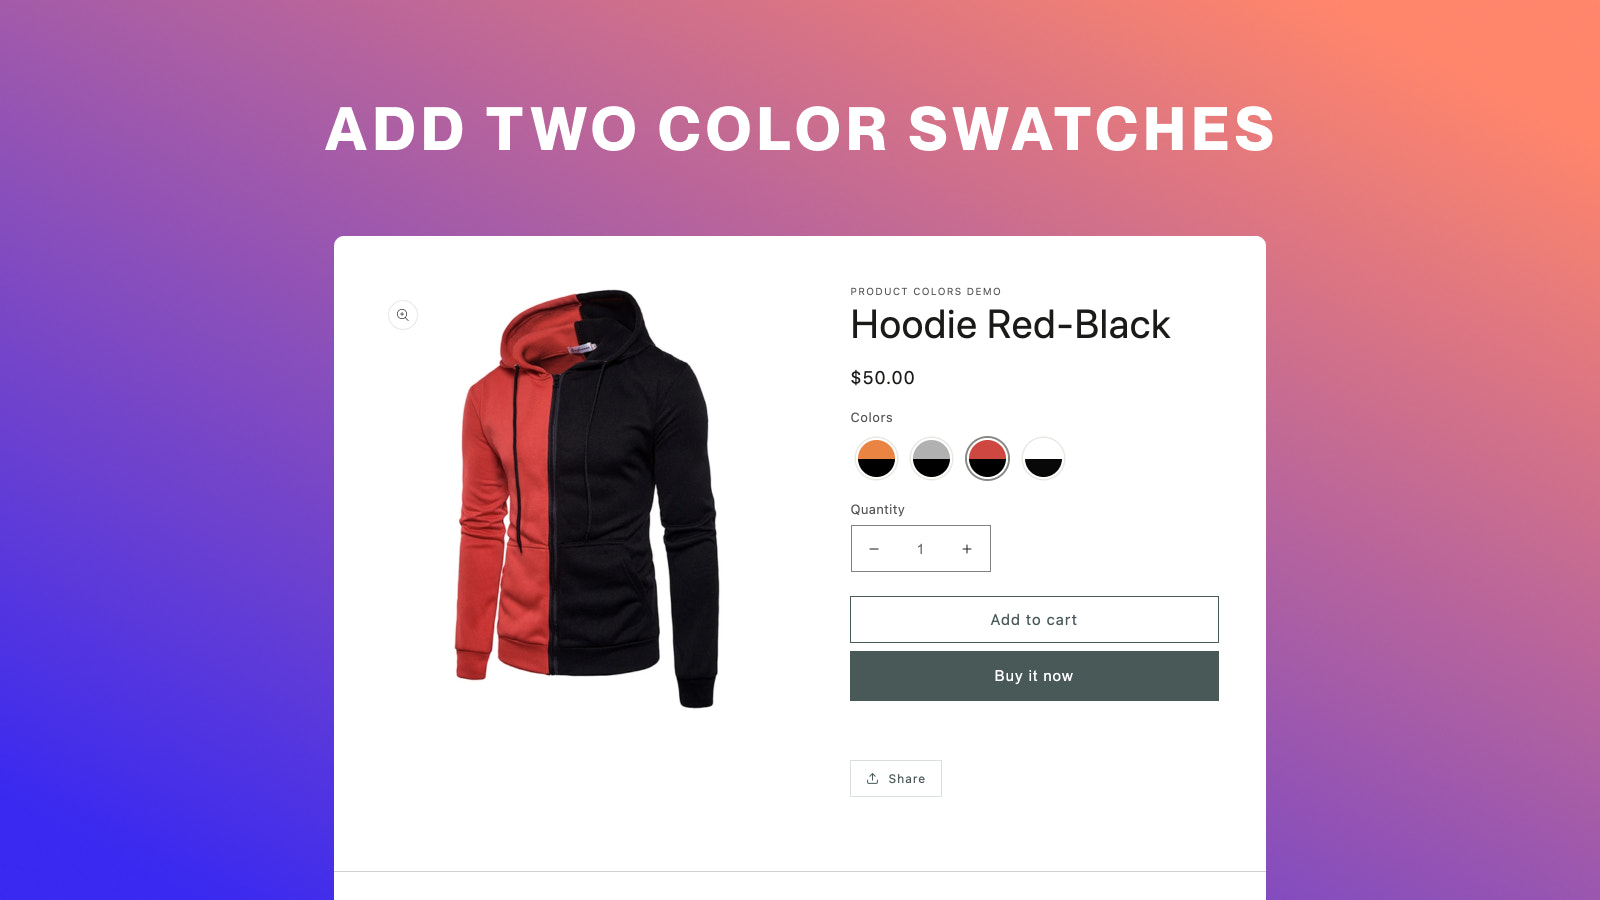 Add two color swatches